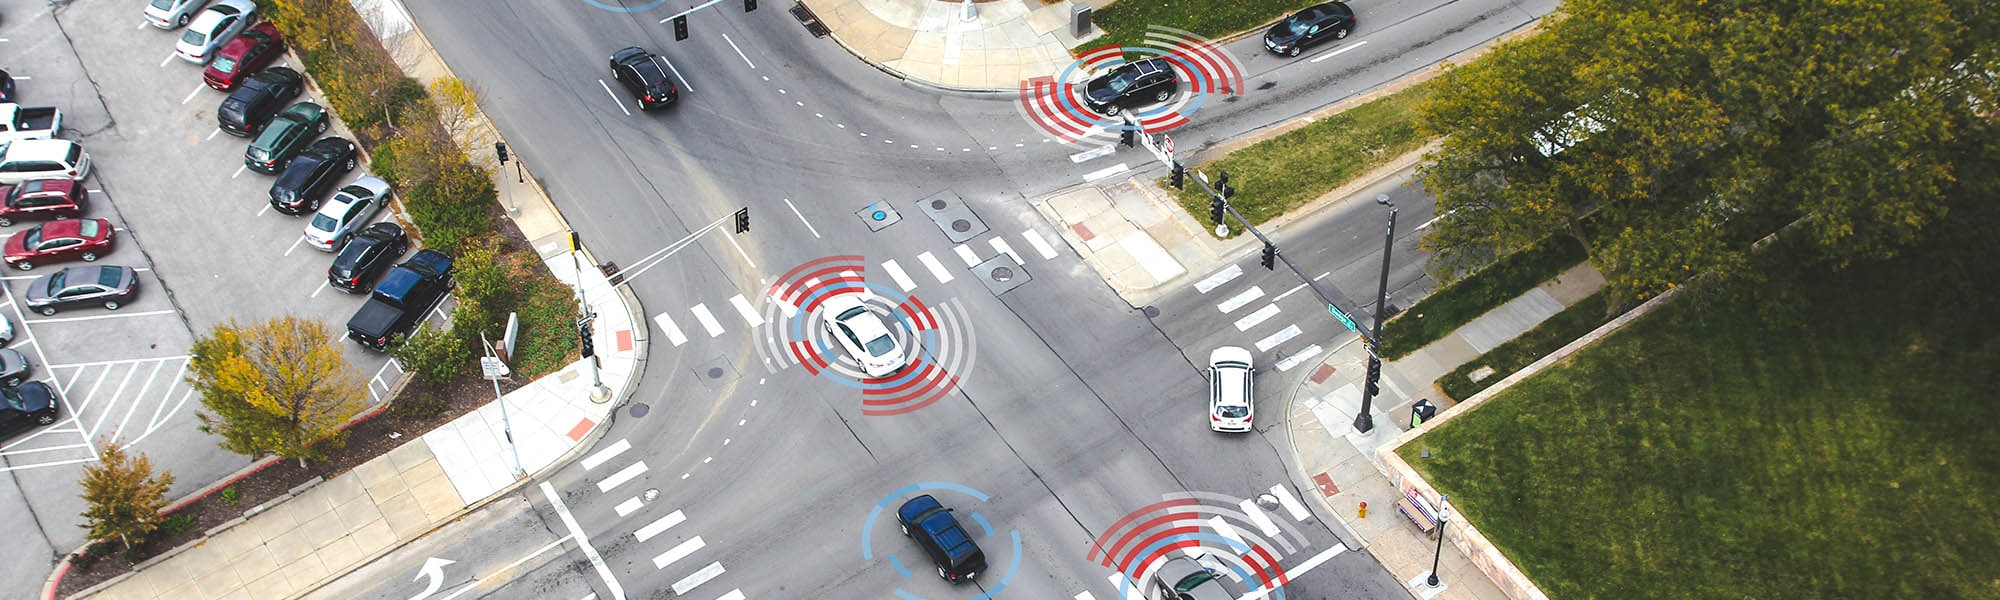 Giving autonomous vehicles an open-source boost – Autoware and TomTom